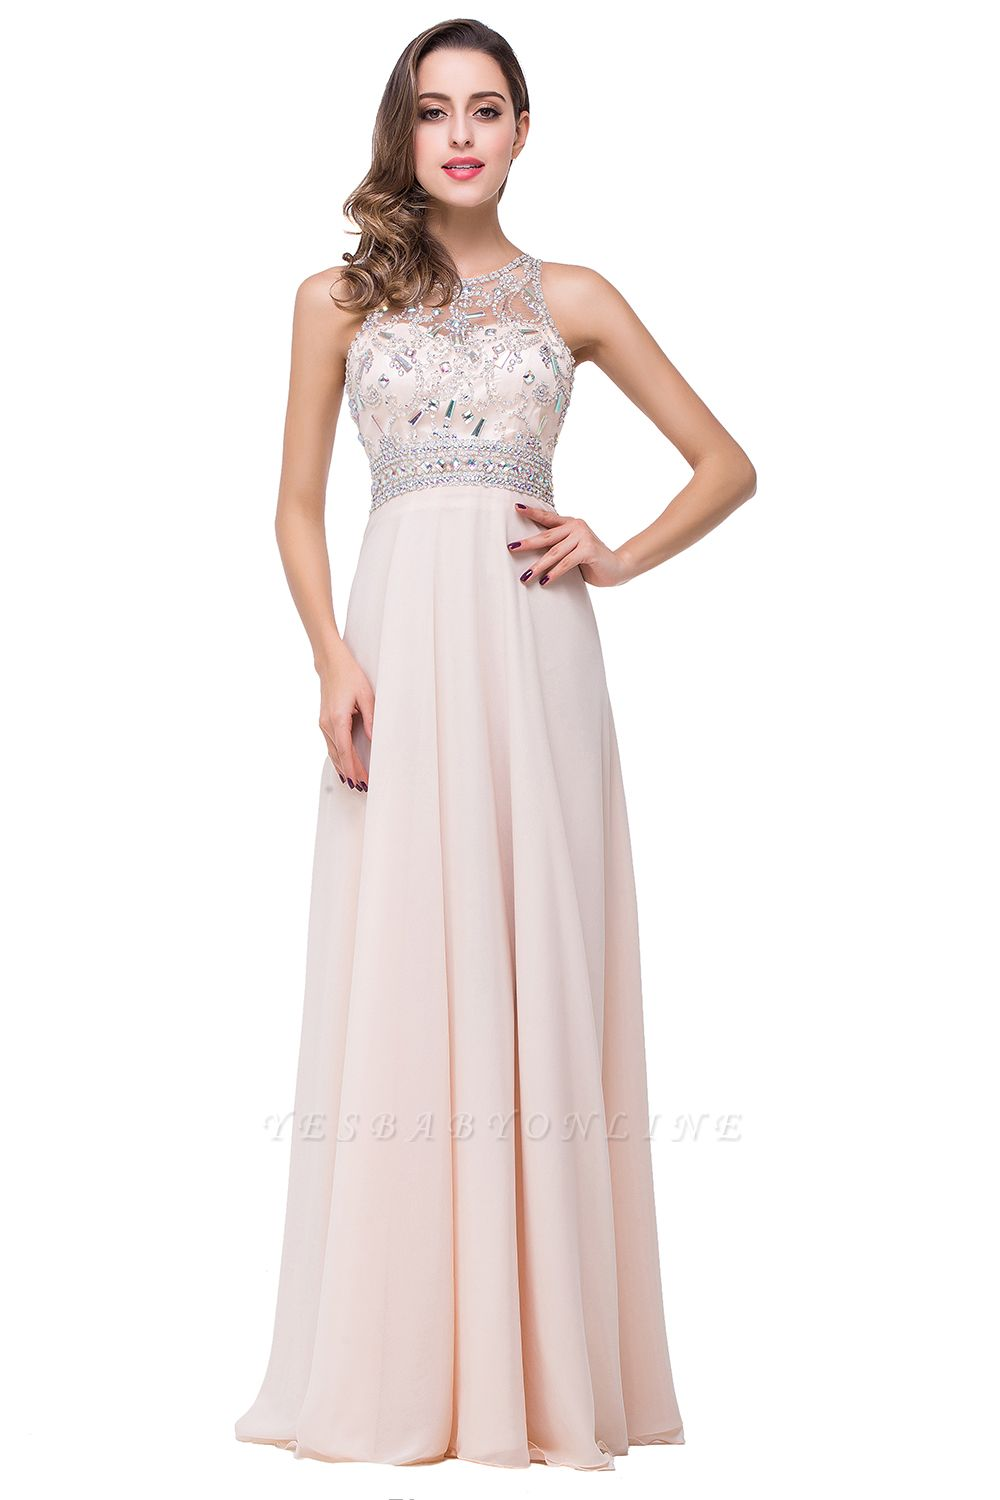 Cheap A-line Jewel Chiffon Prom Dress with Beading in Stock